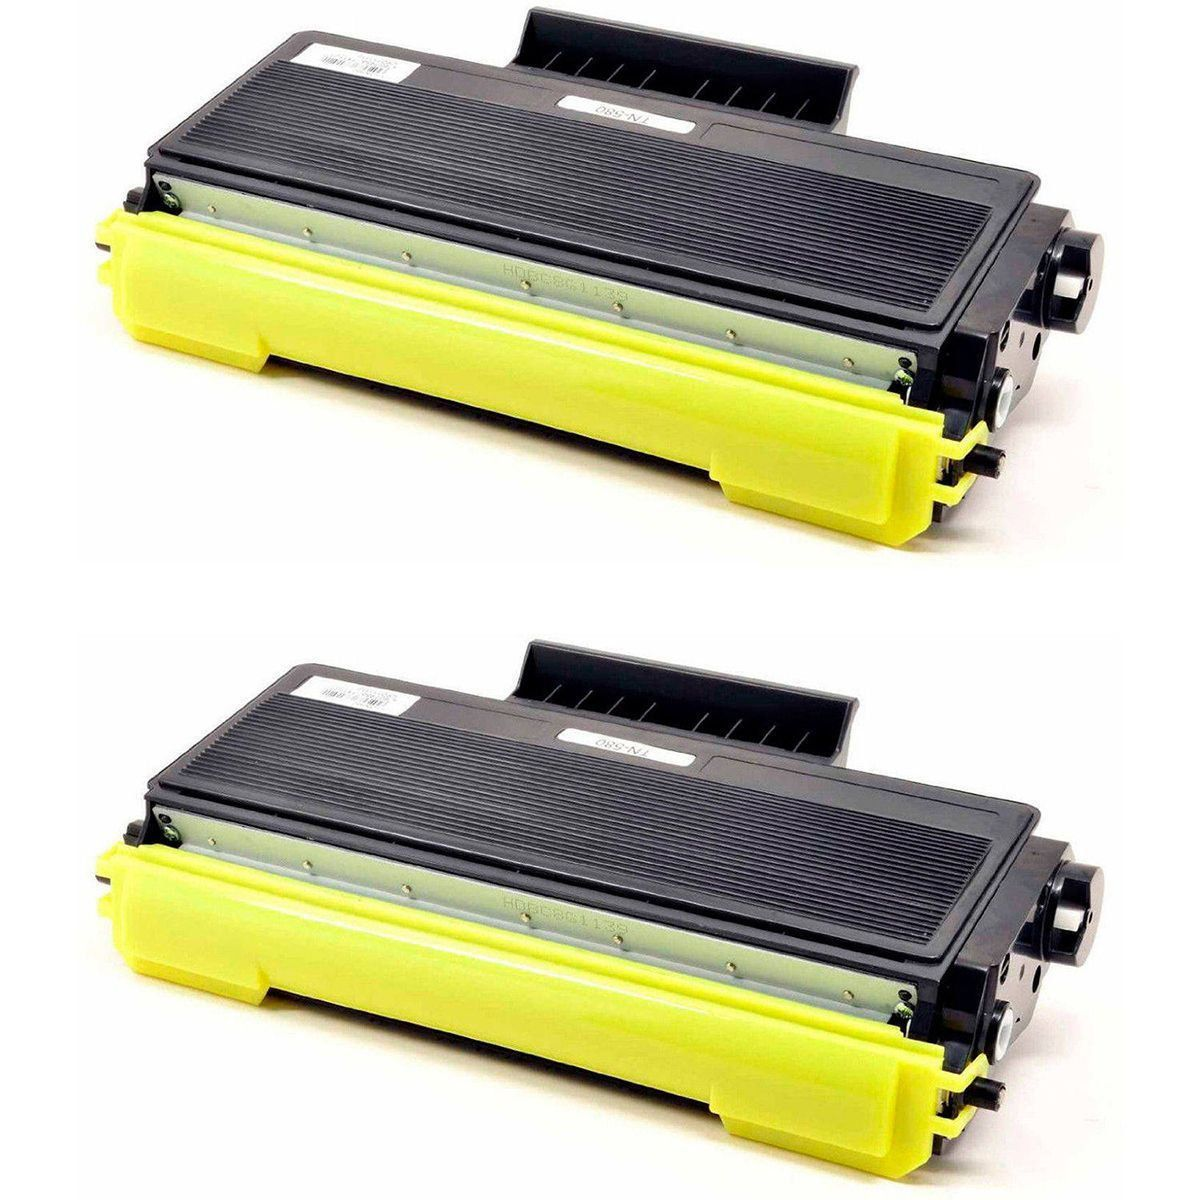 Compatível: Kit 2x Toner TN650 TN620 TN580 TN550 para Brother HL5340 HL5240 DCP-8060 8065 8080 8860 / Preto / 8.000